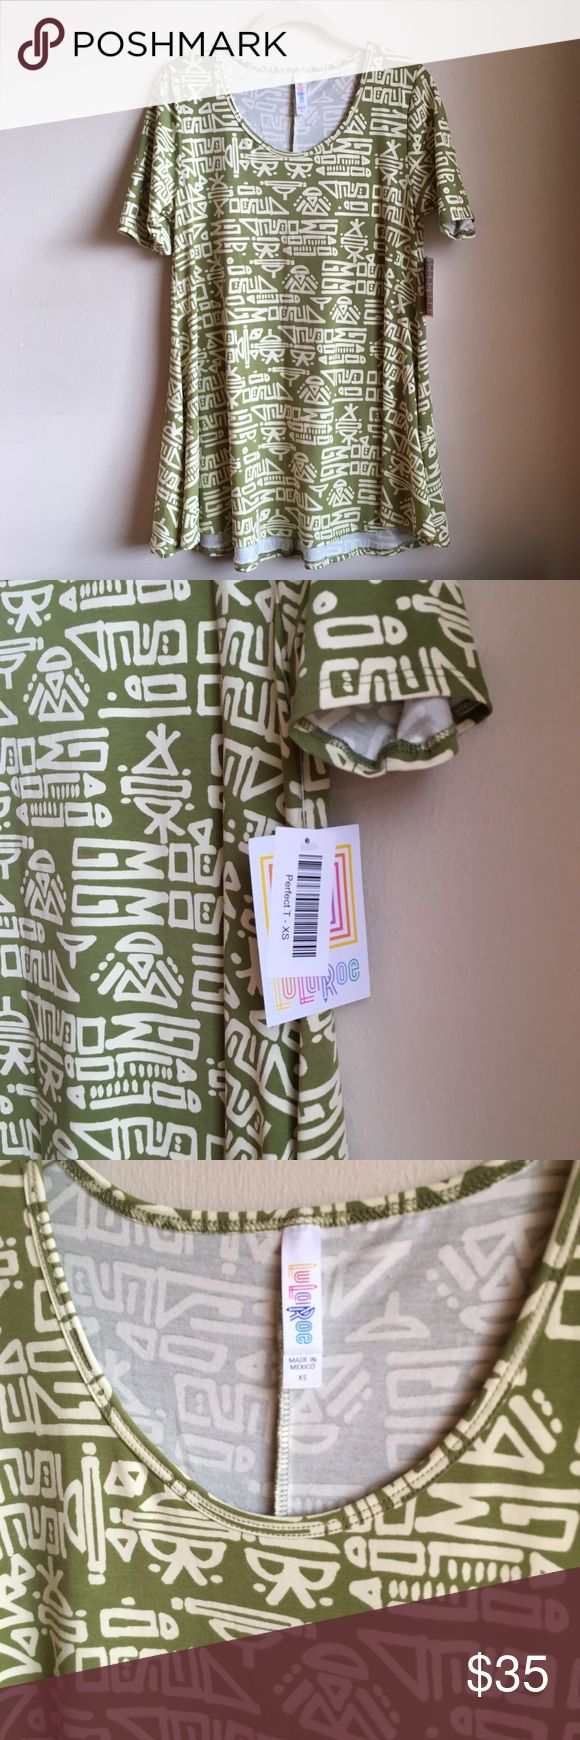 {LULAROE} Green Aztec Perfect T Lularoe Perfect T - BNWT - XS - Green with Cream colored Aztec Pattern. Last photo is the Lularoe size chart for this shirt style. I am not a consultant but have been on a Lularoe shopping spree lately - trying styles and sizes. Some things didn't match what I thought they would or the patterns/fit didn't look good on me so I'm selling them here. LuLaRoe Tops Tees - Short Sleeve